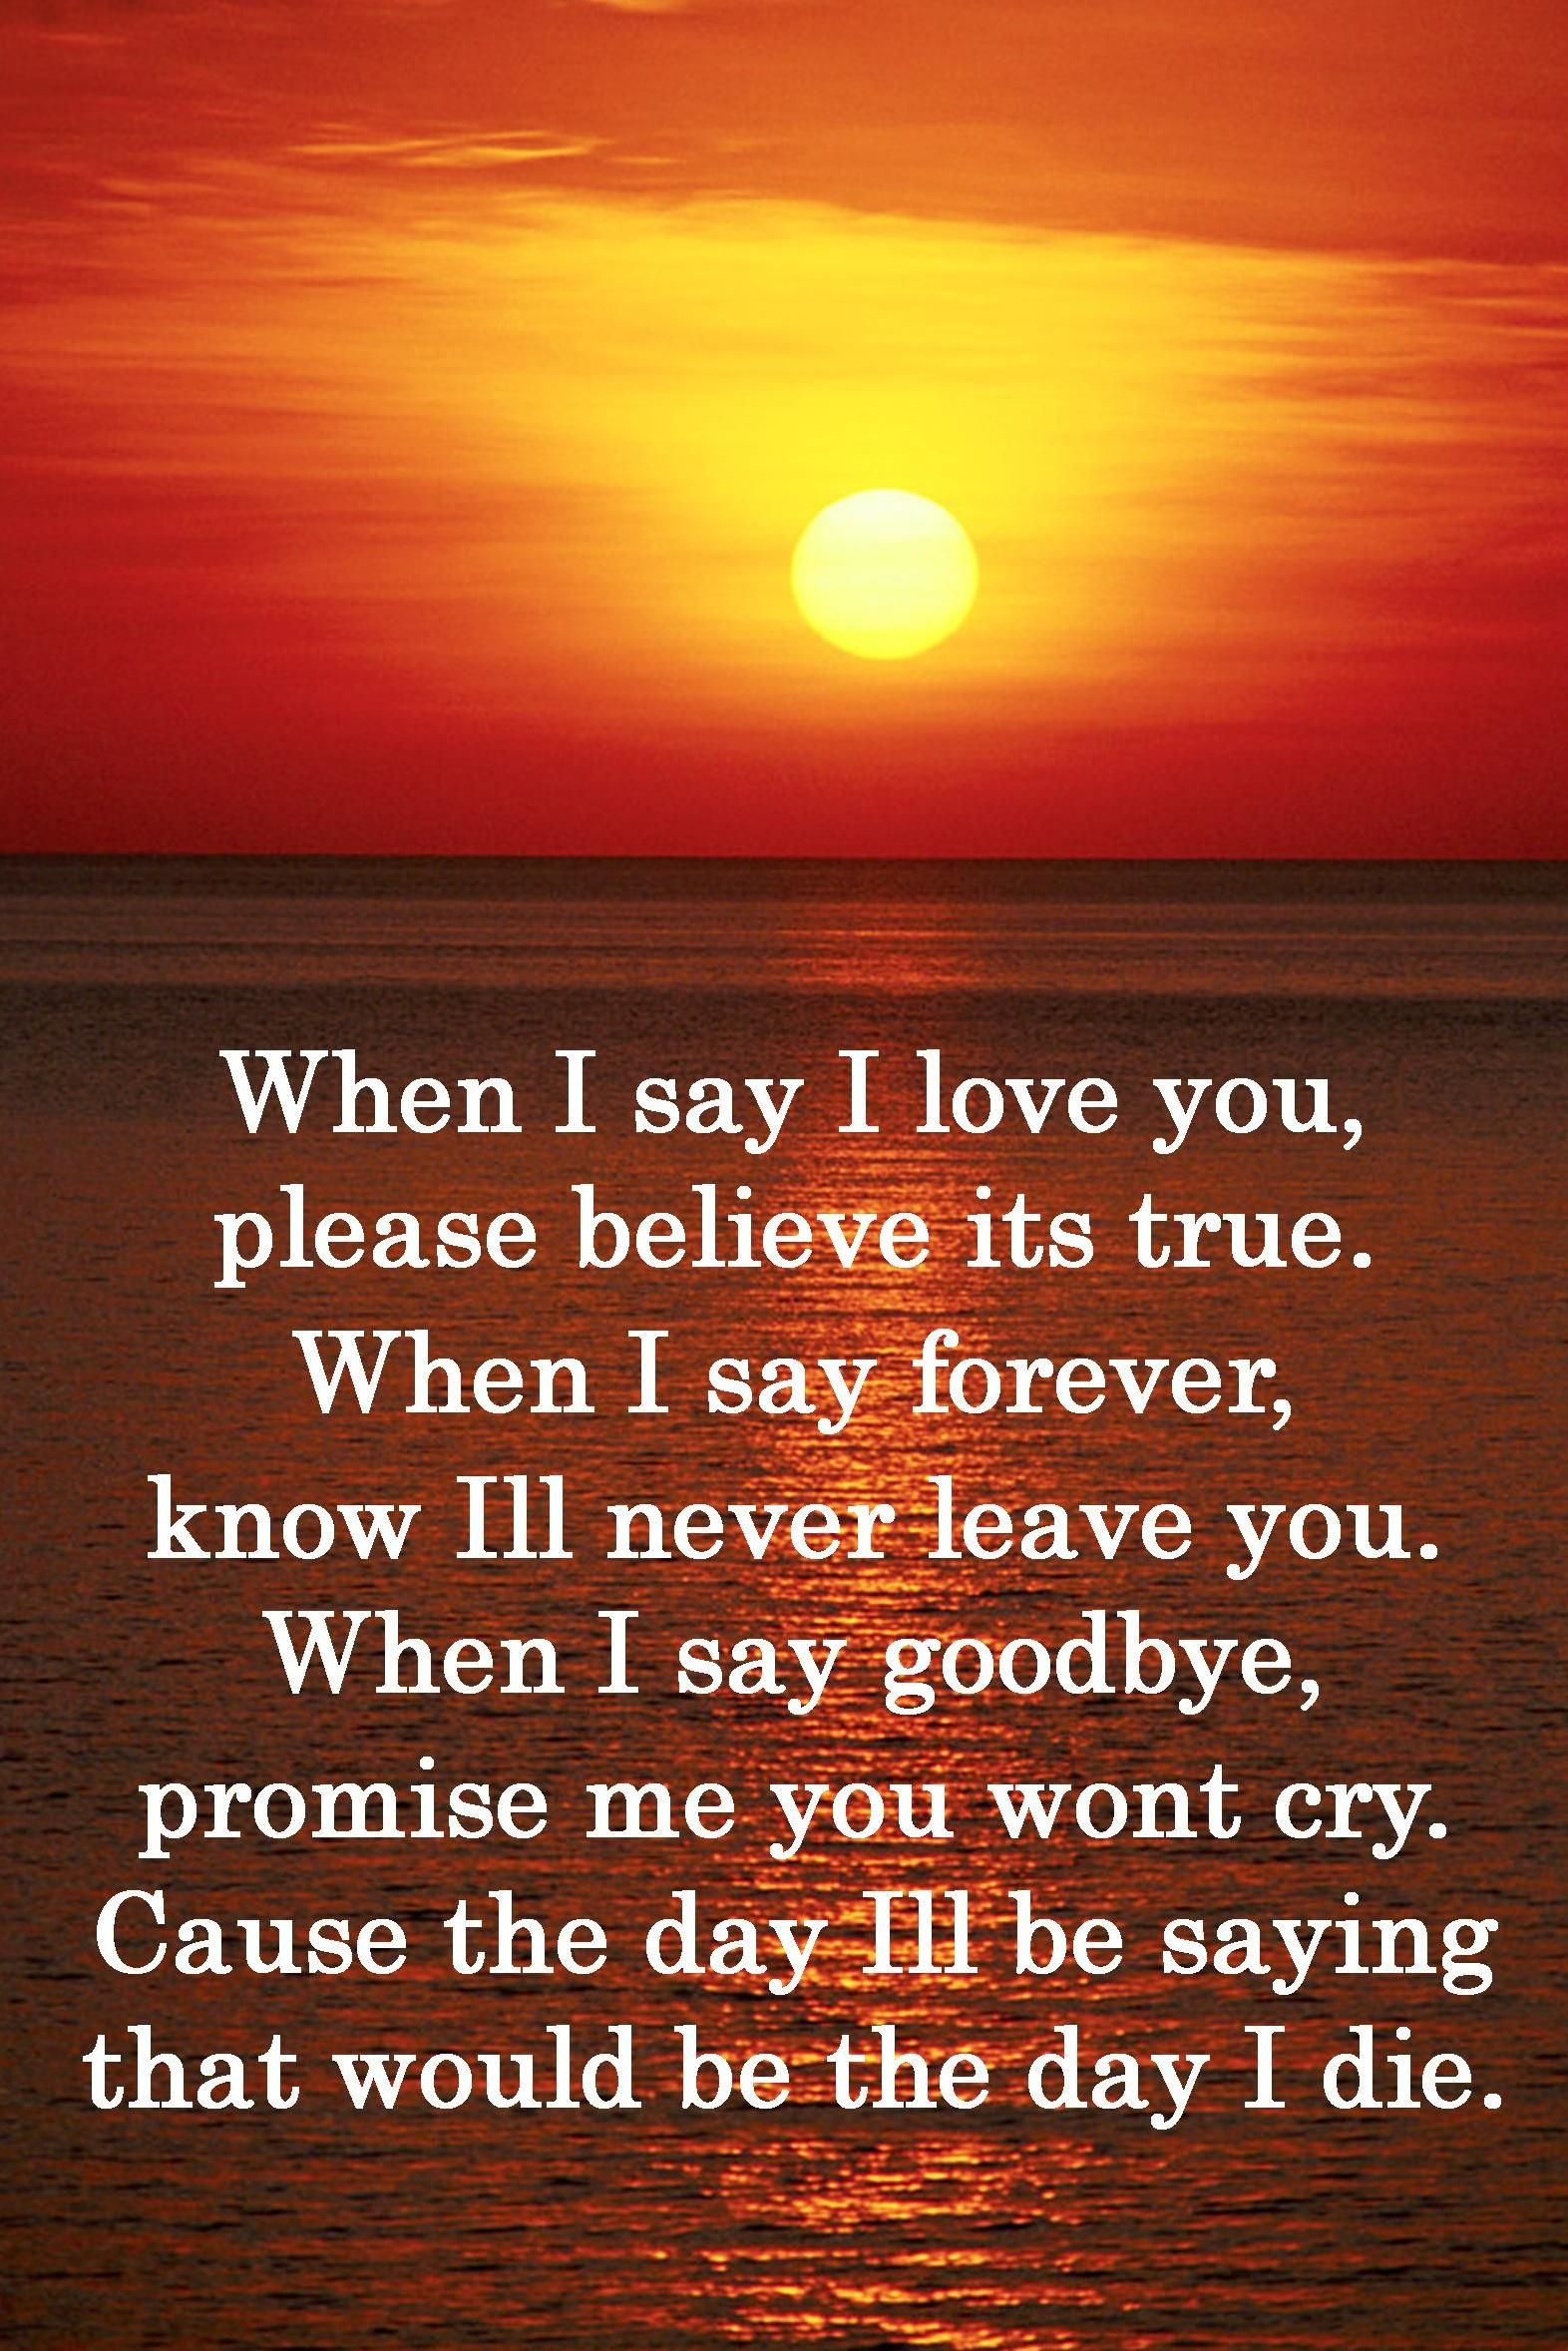 When I say I love you, please believe its true. When I say forever